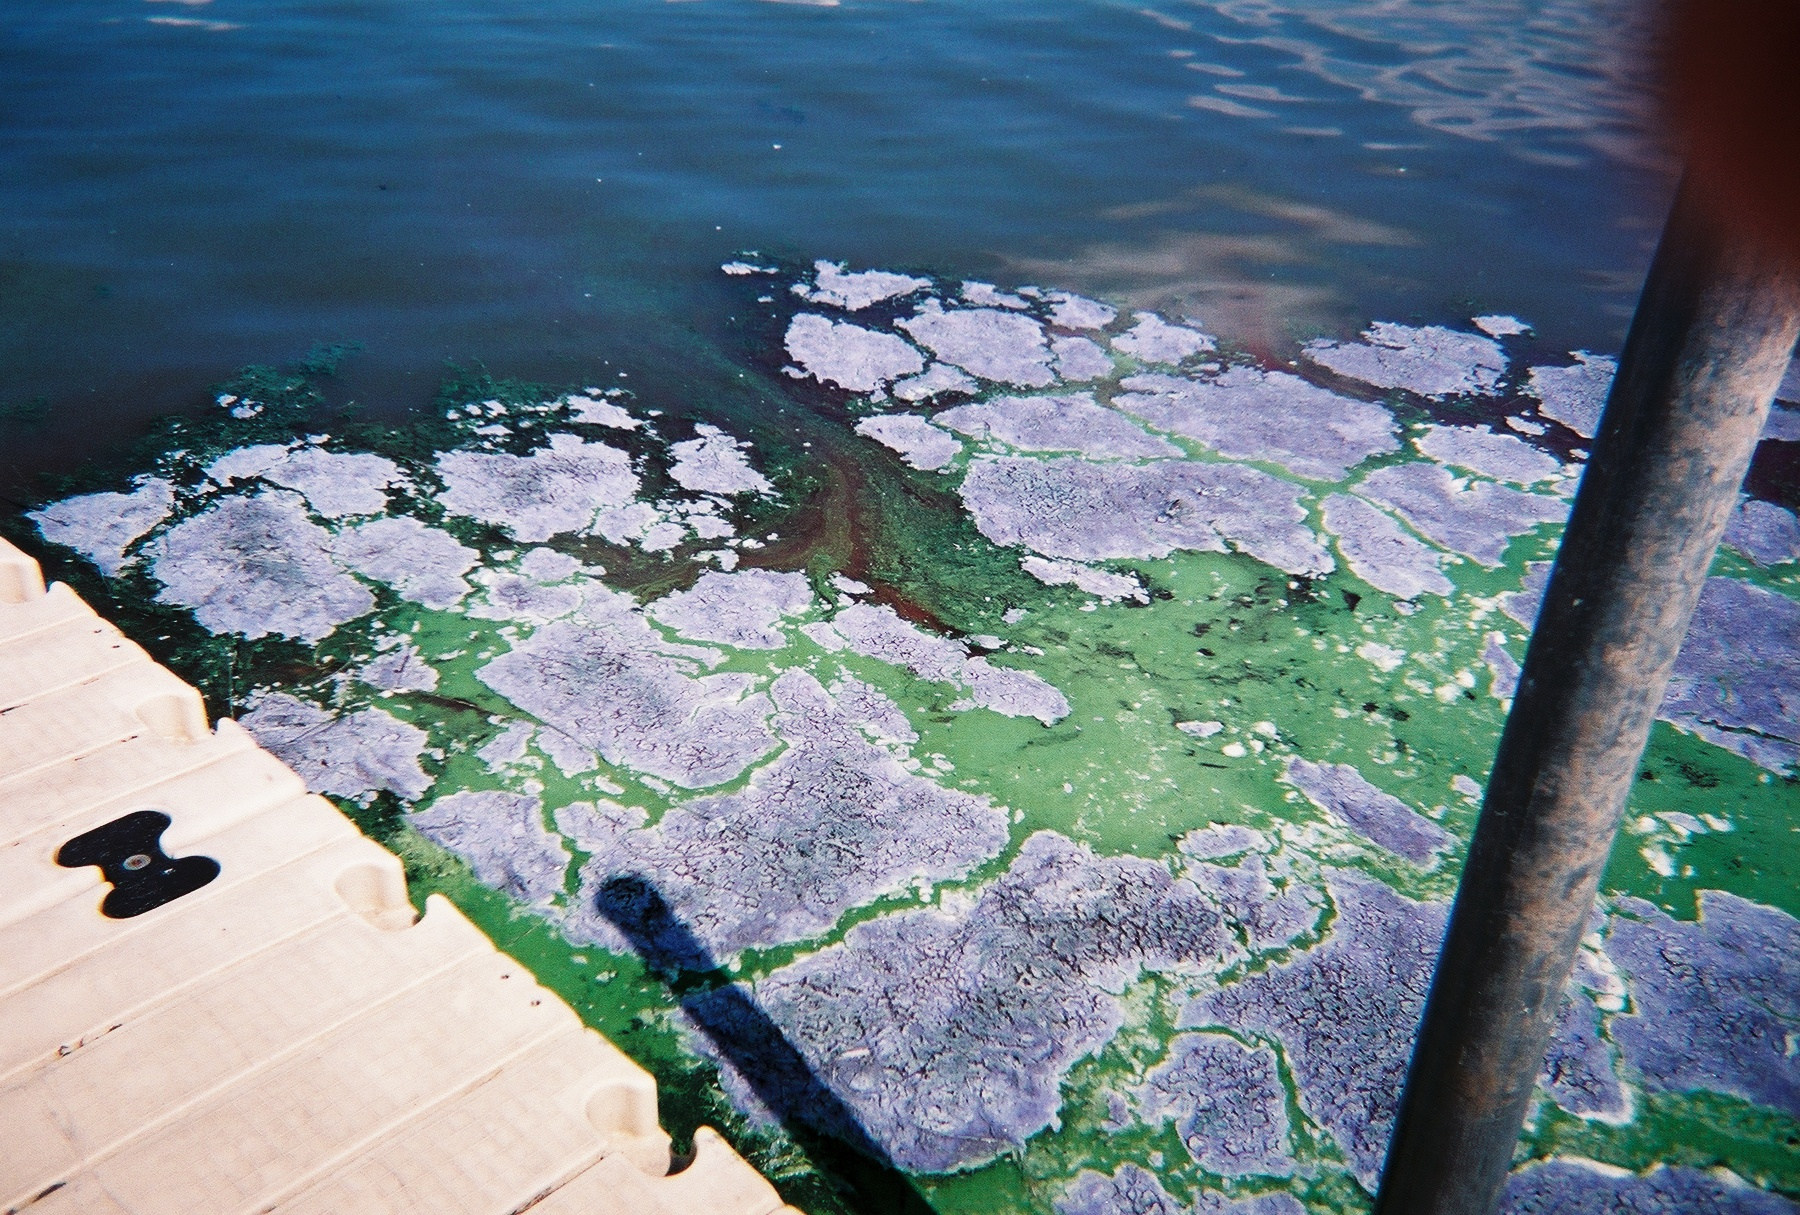 Algae blooms on Lake Kegonsa in 2010.